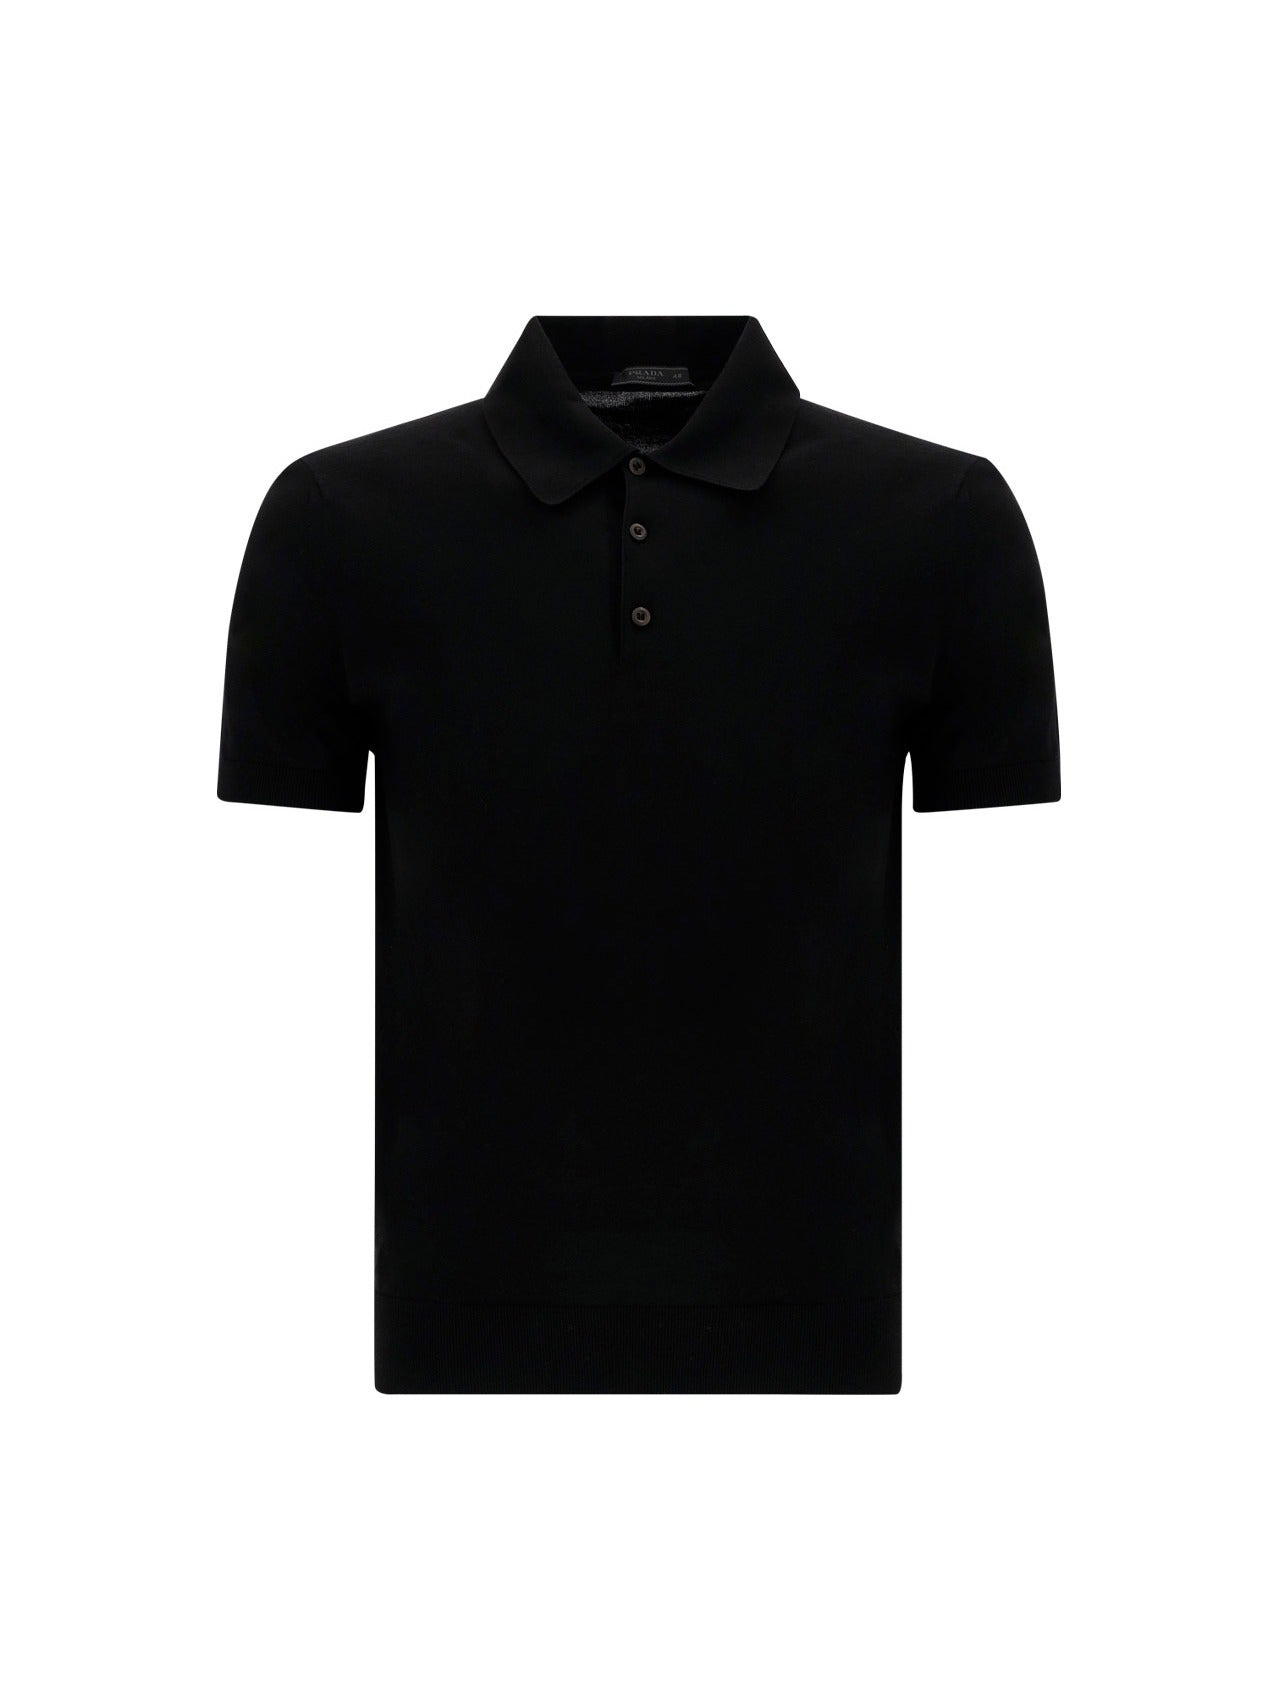 Prada PRADA POLO SHIRT